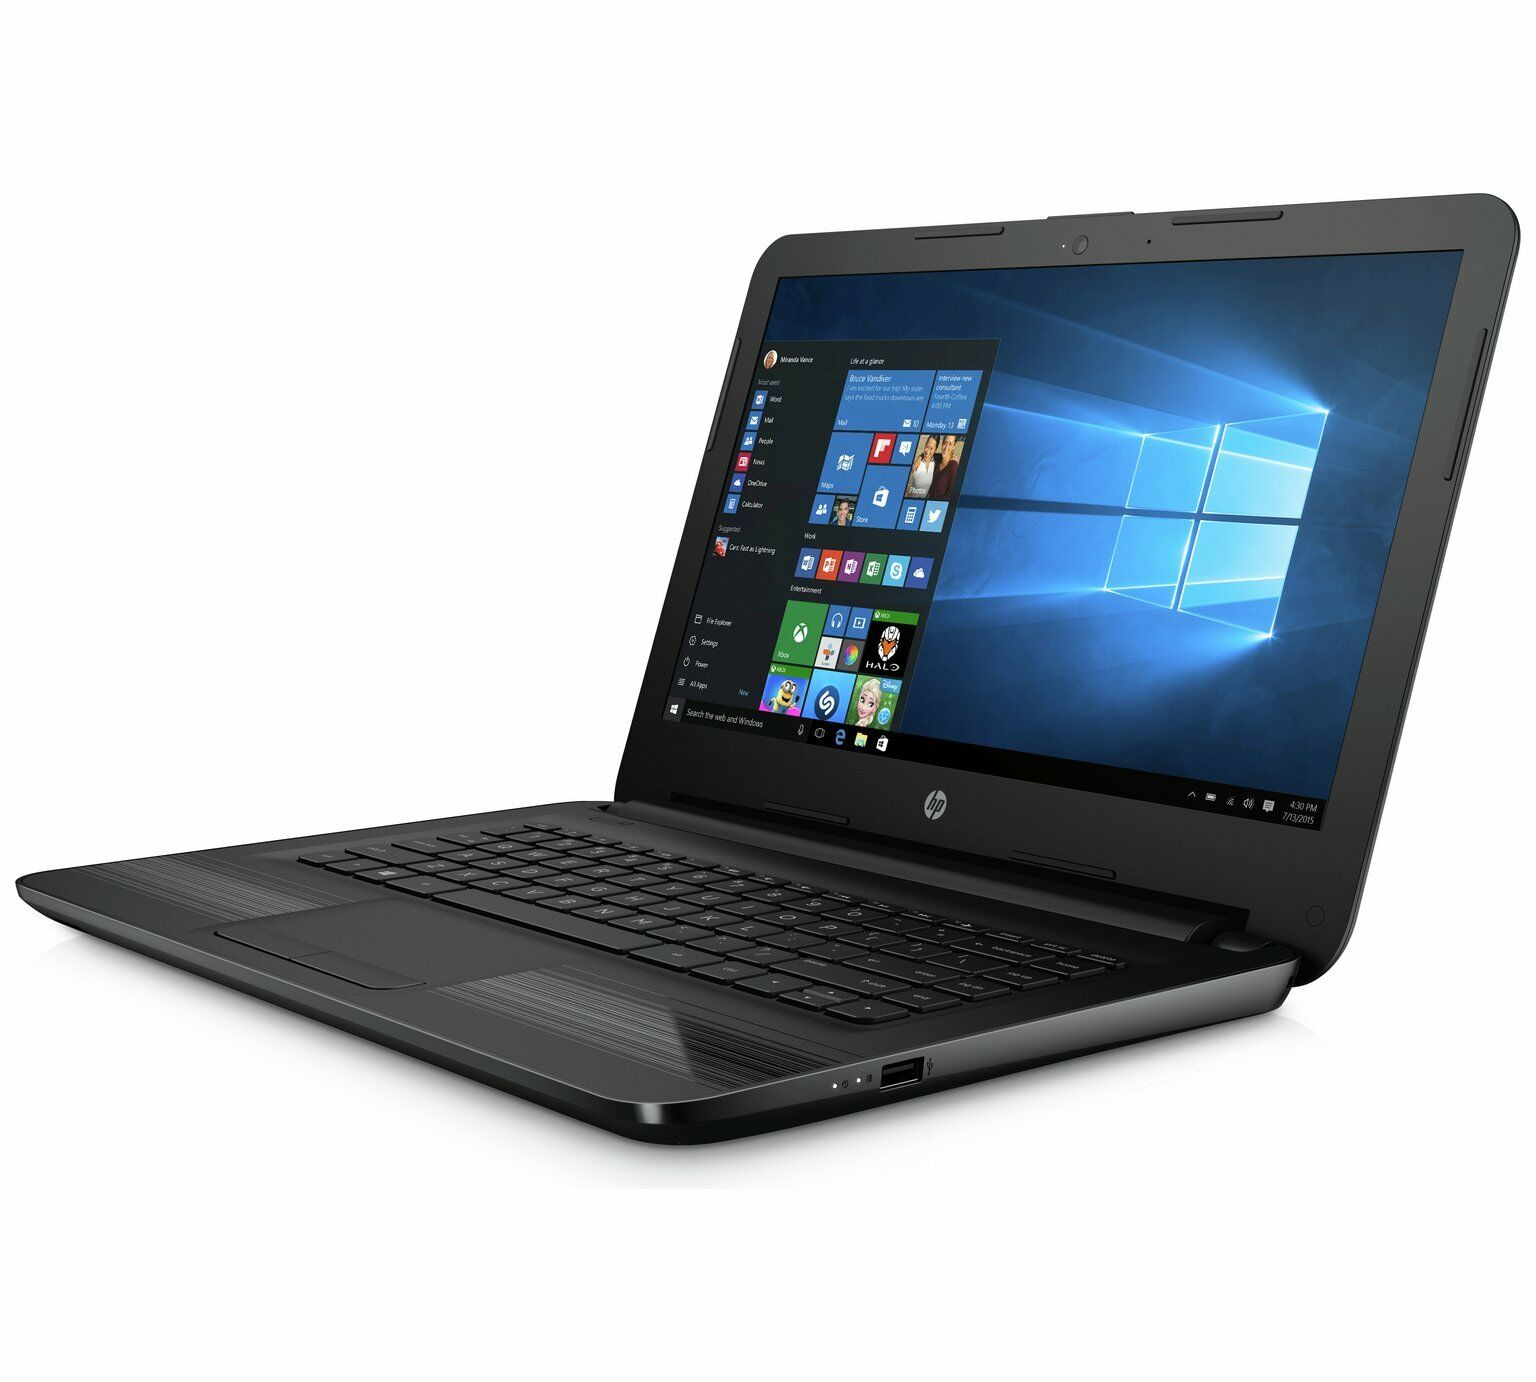 hp 14 am075na 14 laptop intel core i3 8gb ram 2tb hdd windows 10 black eur 372 92. Black Bedroom Furniture Sets. Home Design Ideas